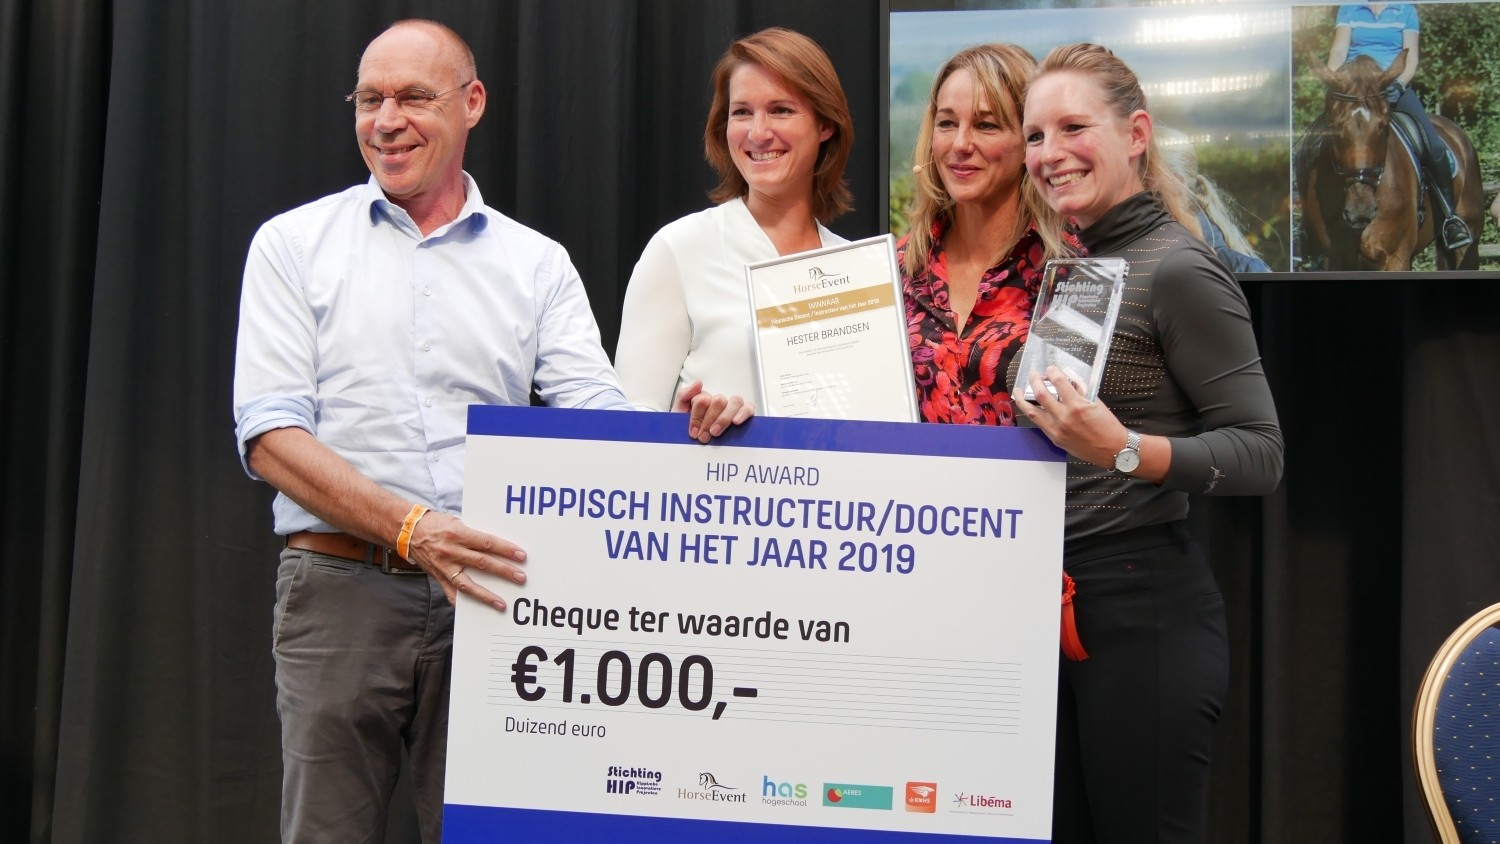 Wie wordt hippisch instructeur/docent van 2020?